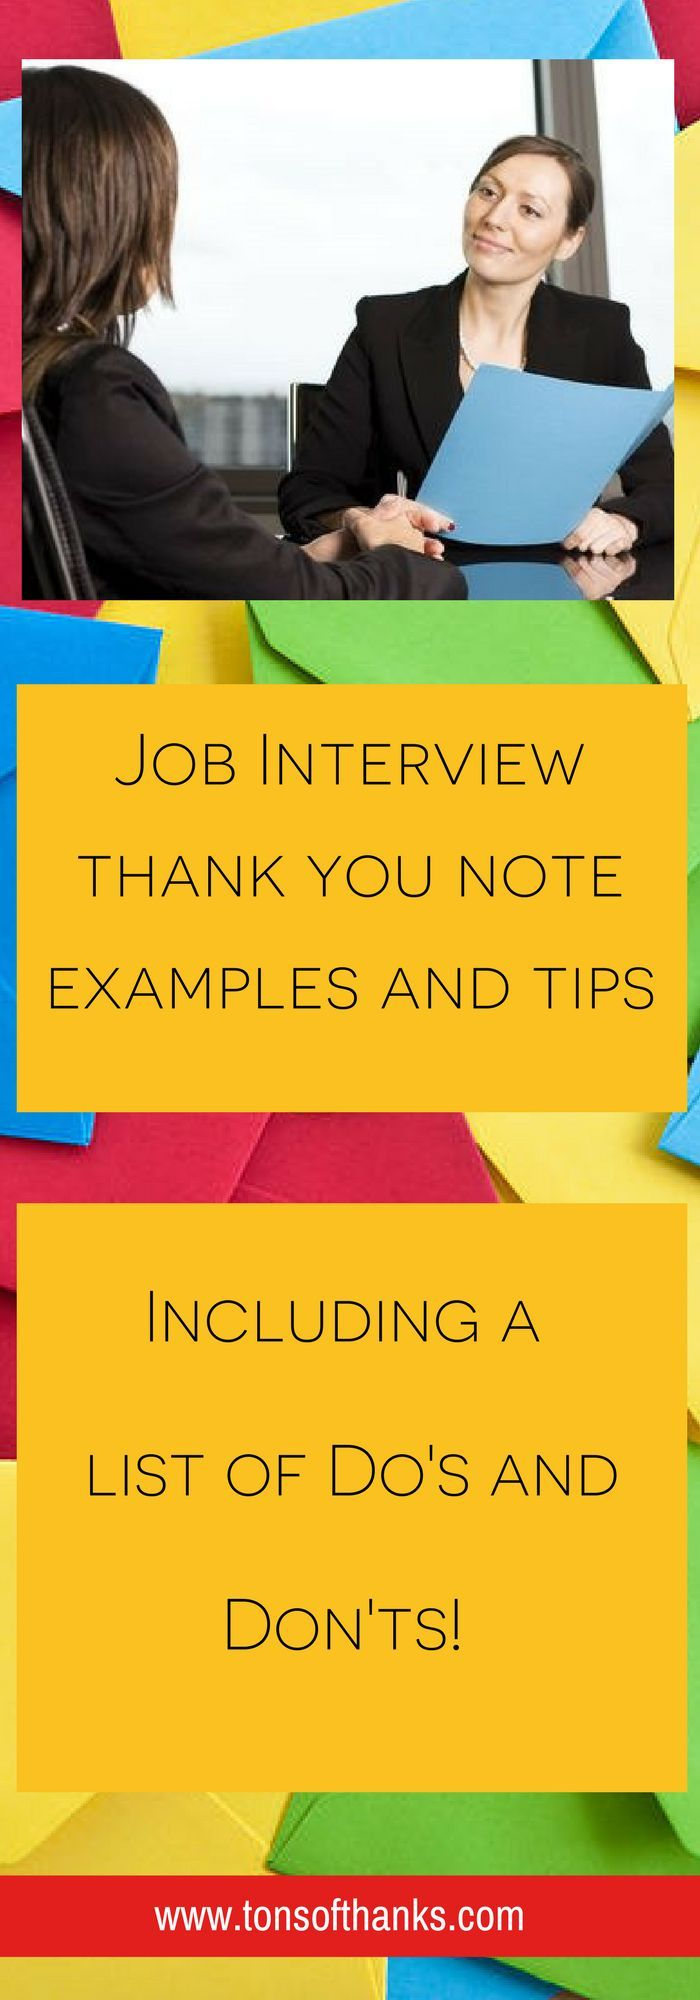 how to write thank you notes for wedding gift cards%0A Job interview thank you note examples  Also  includes a list of what to do